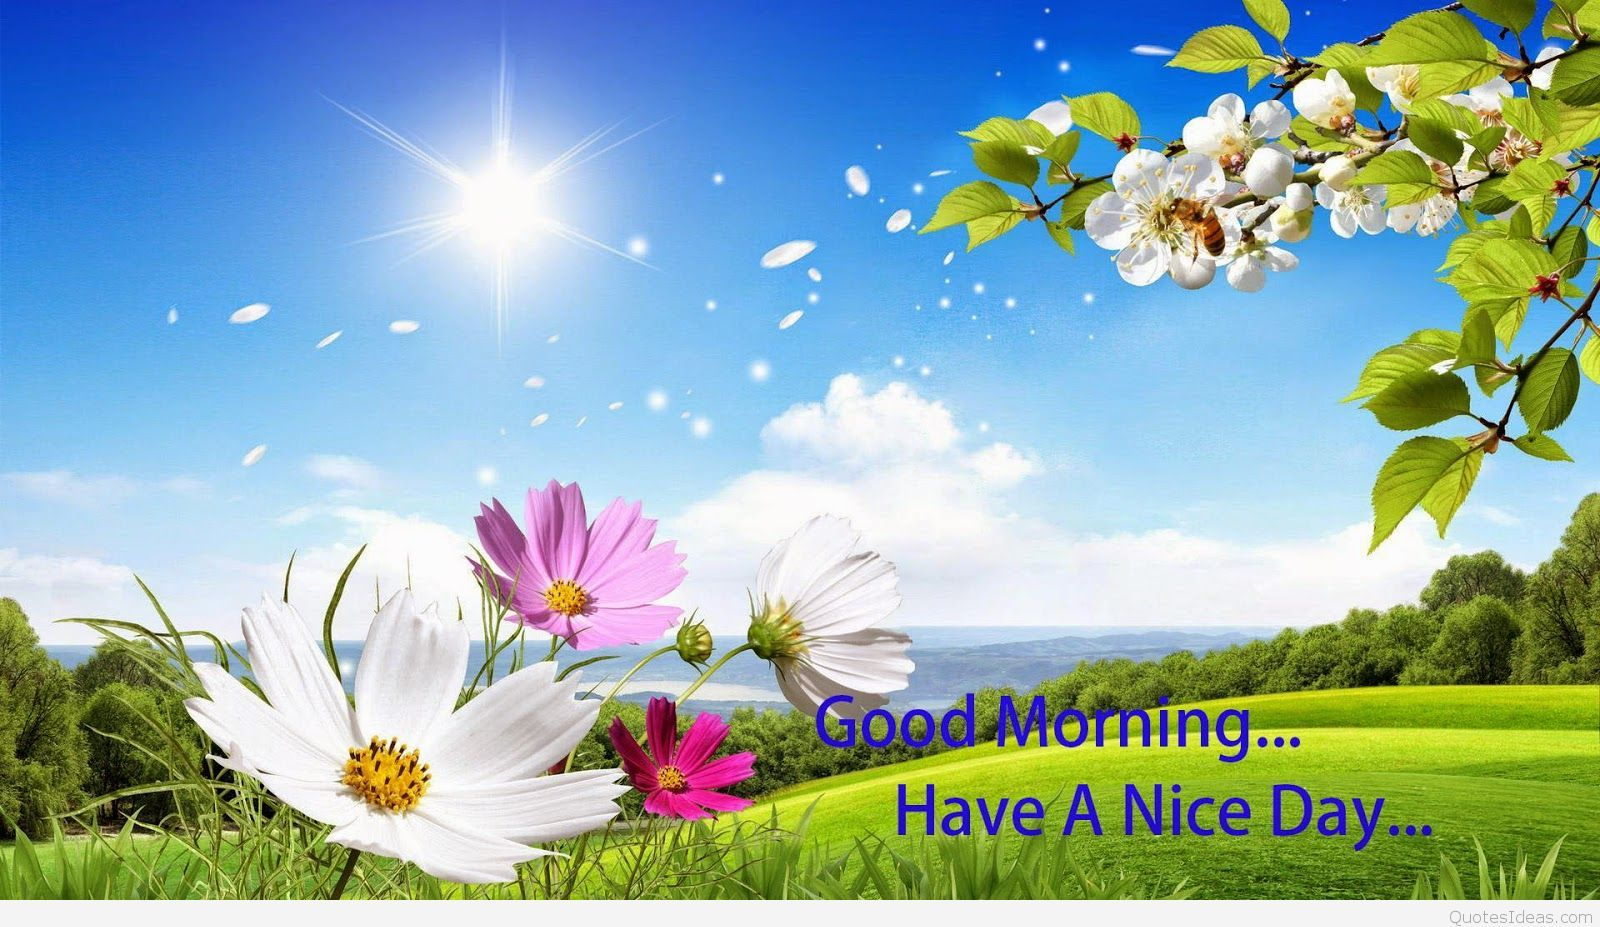 Good Morning 3d Wallpaper Download Good Morning Wallpaper Good Morning Picture Good Morning Animation